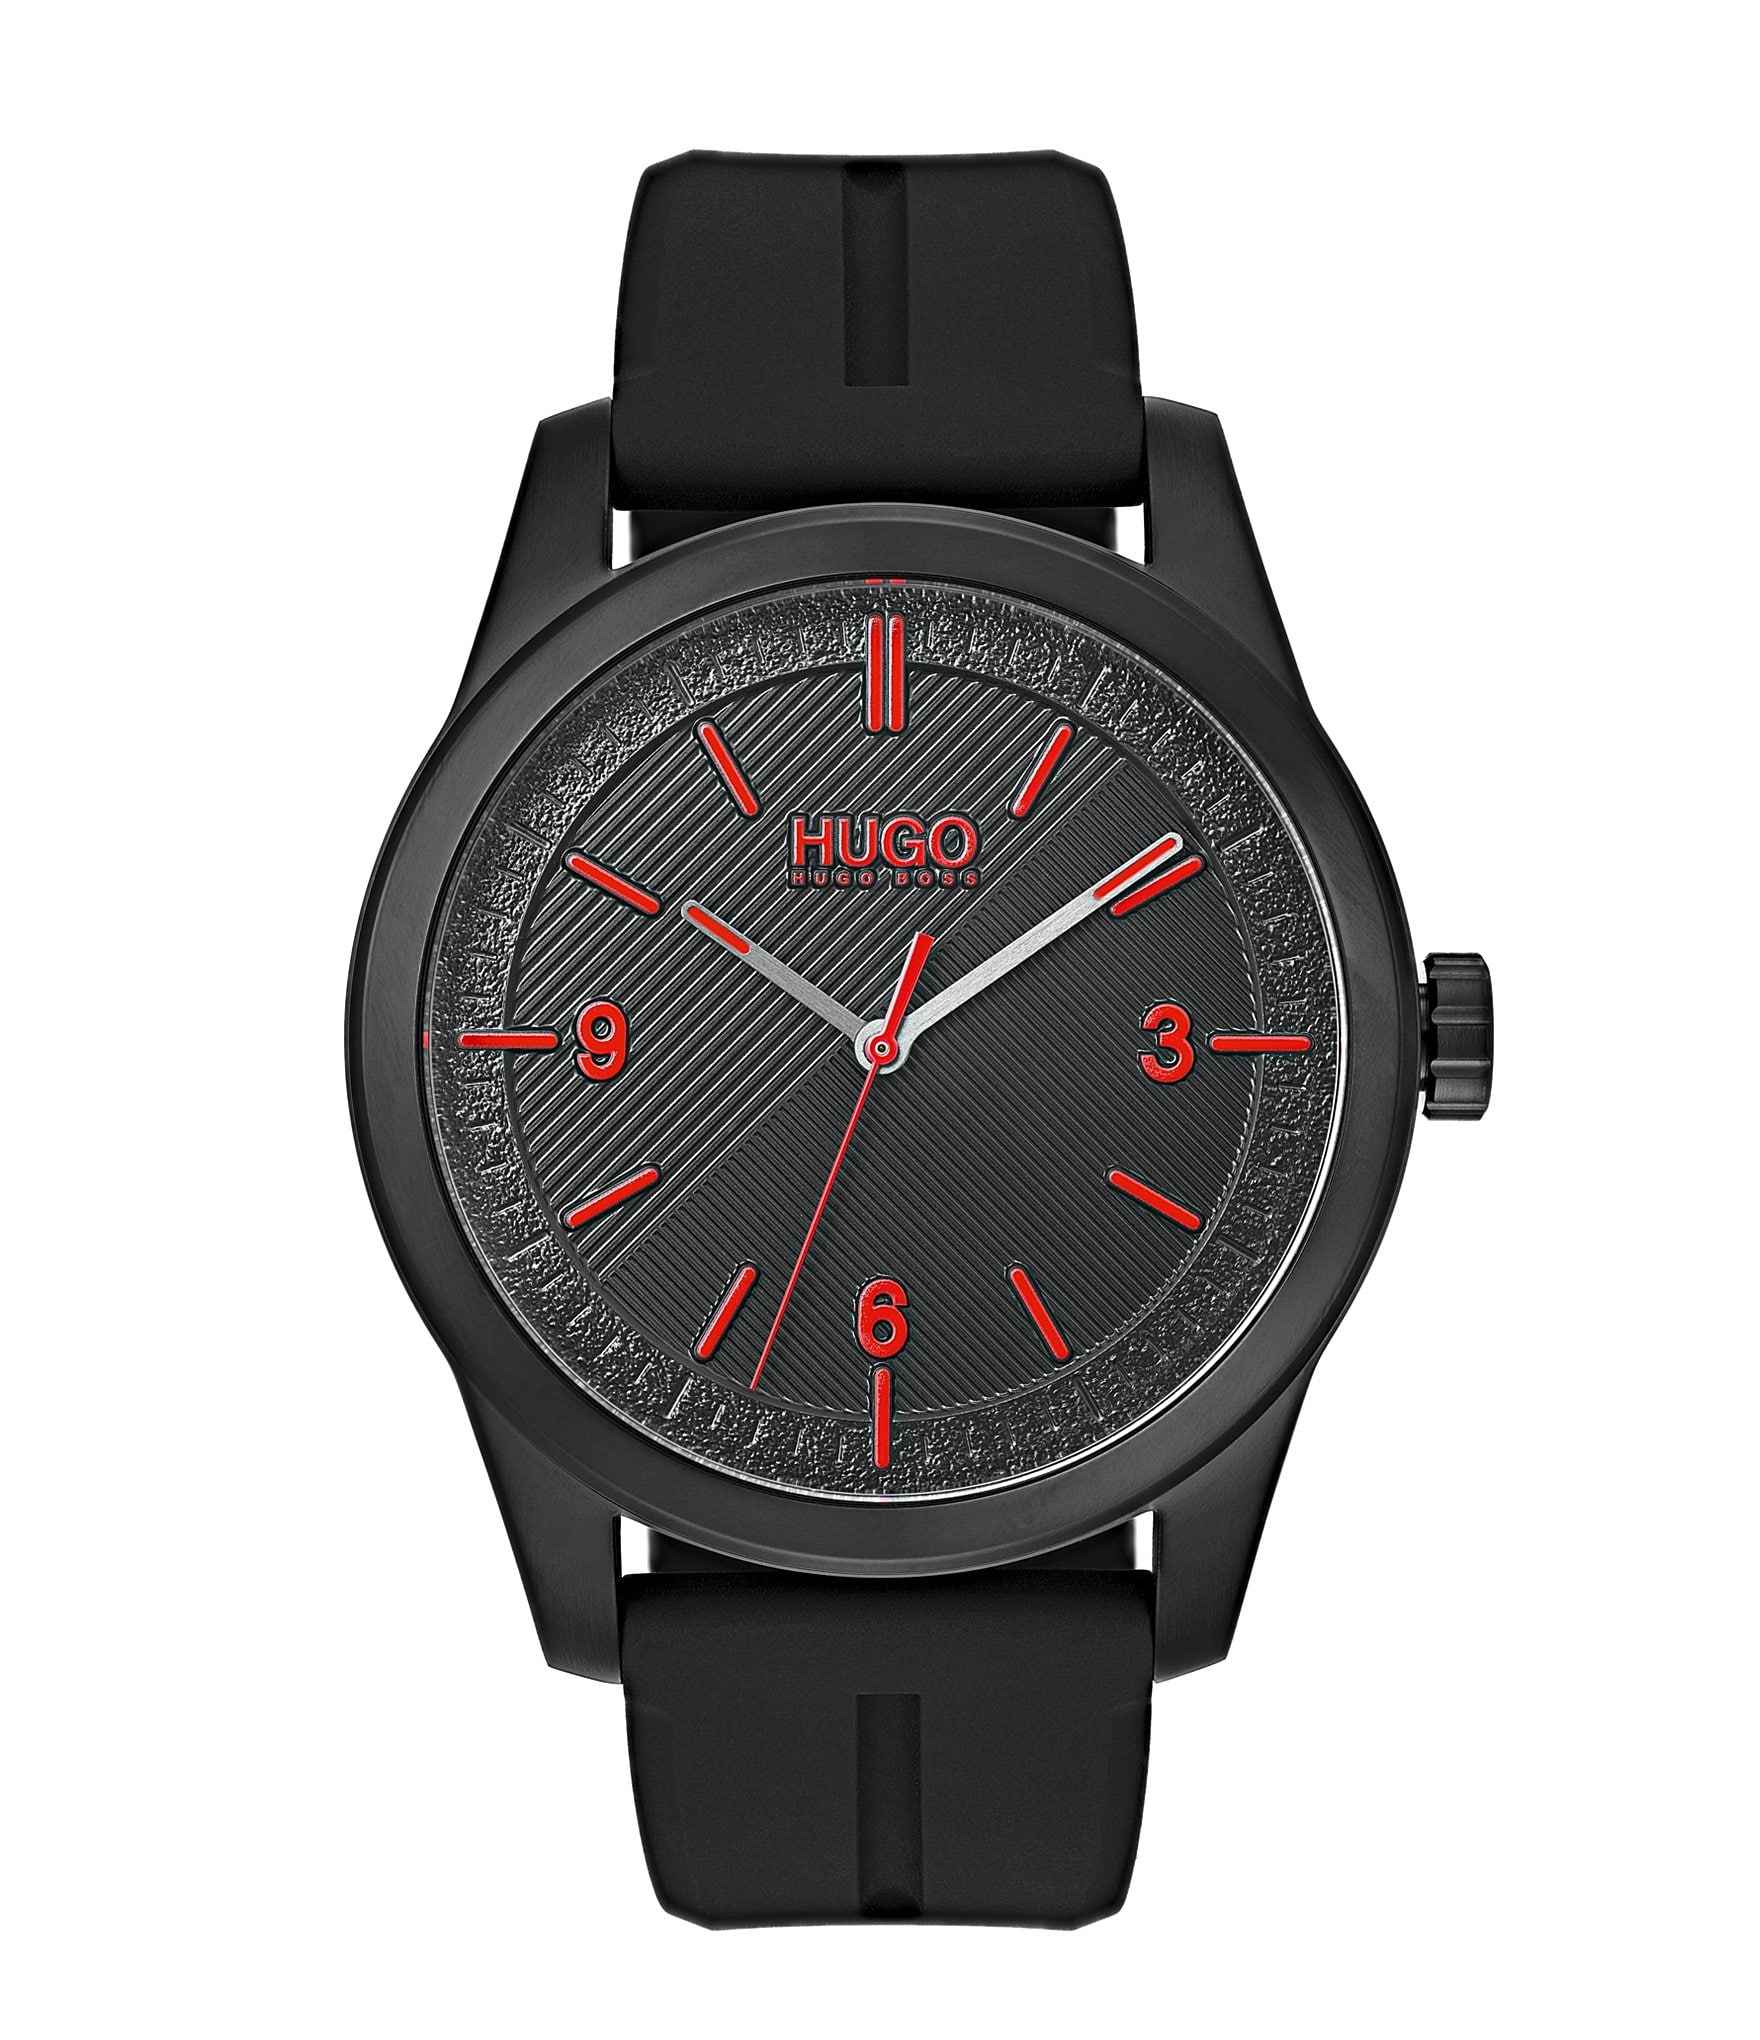 b05978b27 HUGO HUGO BOSS #Create Black Rubber Strap Analog Watch | Dillard's